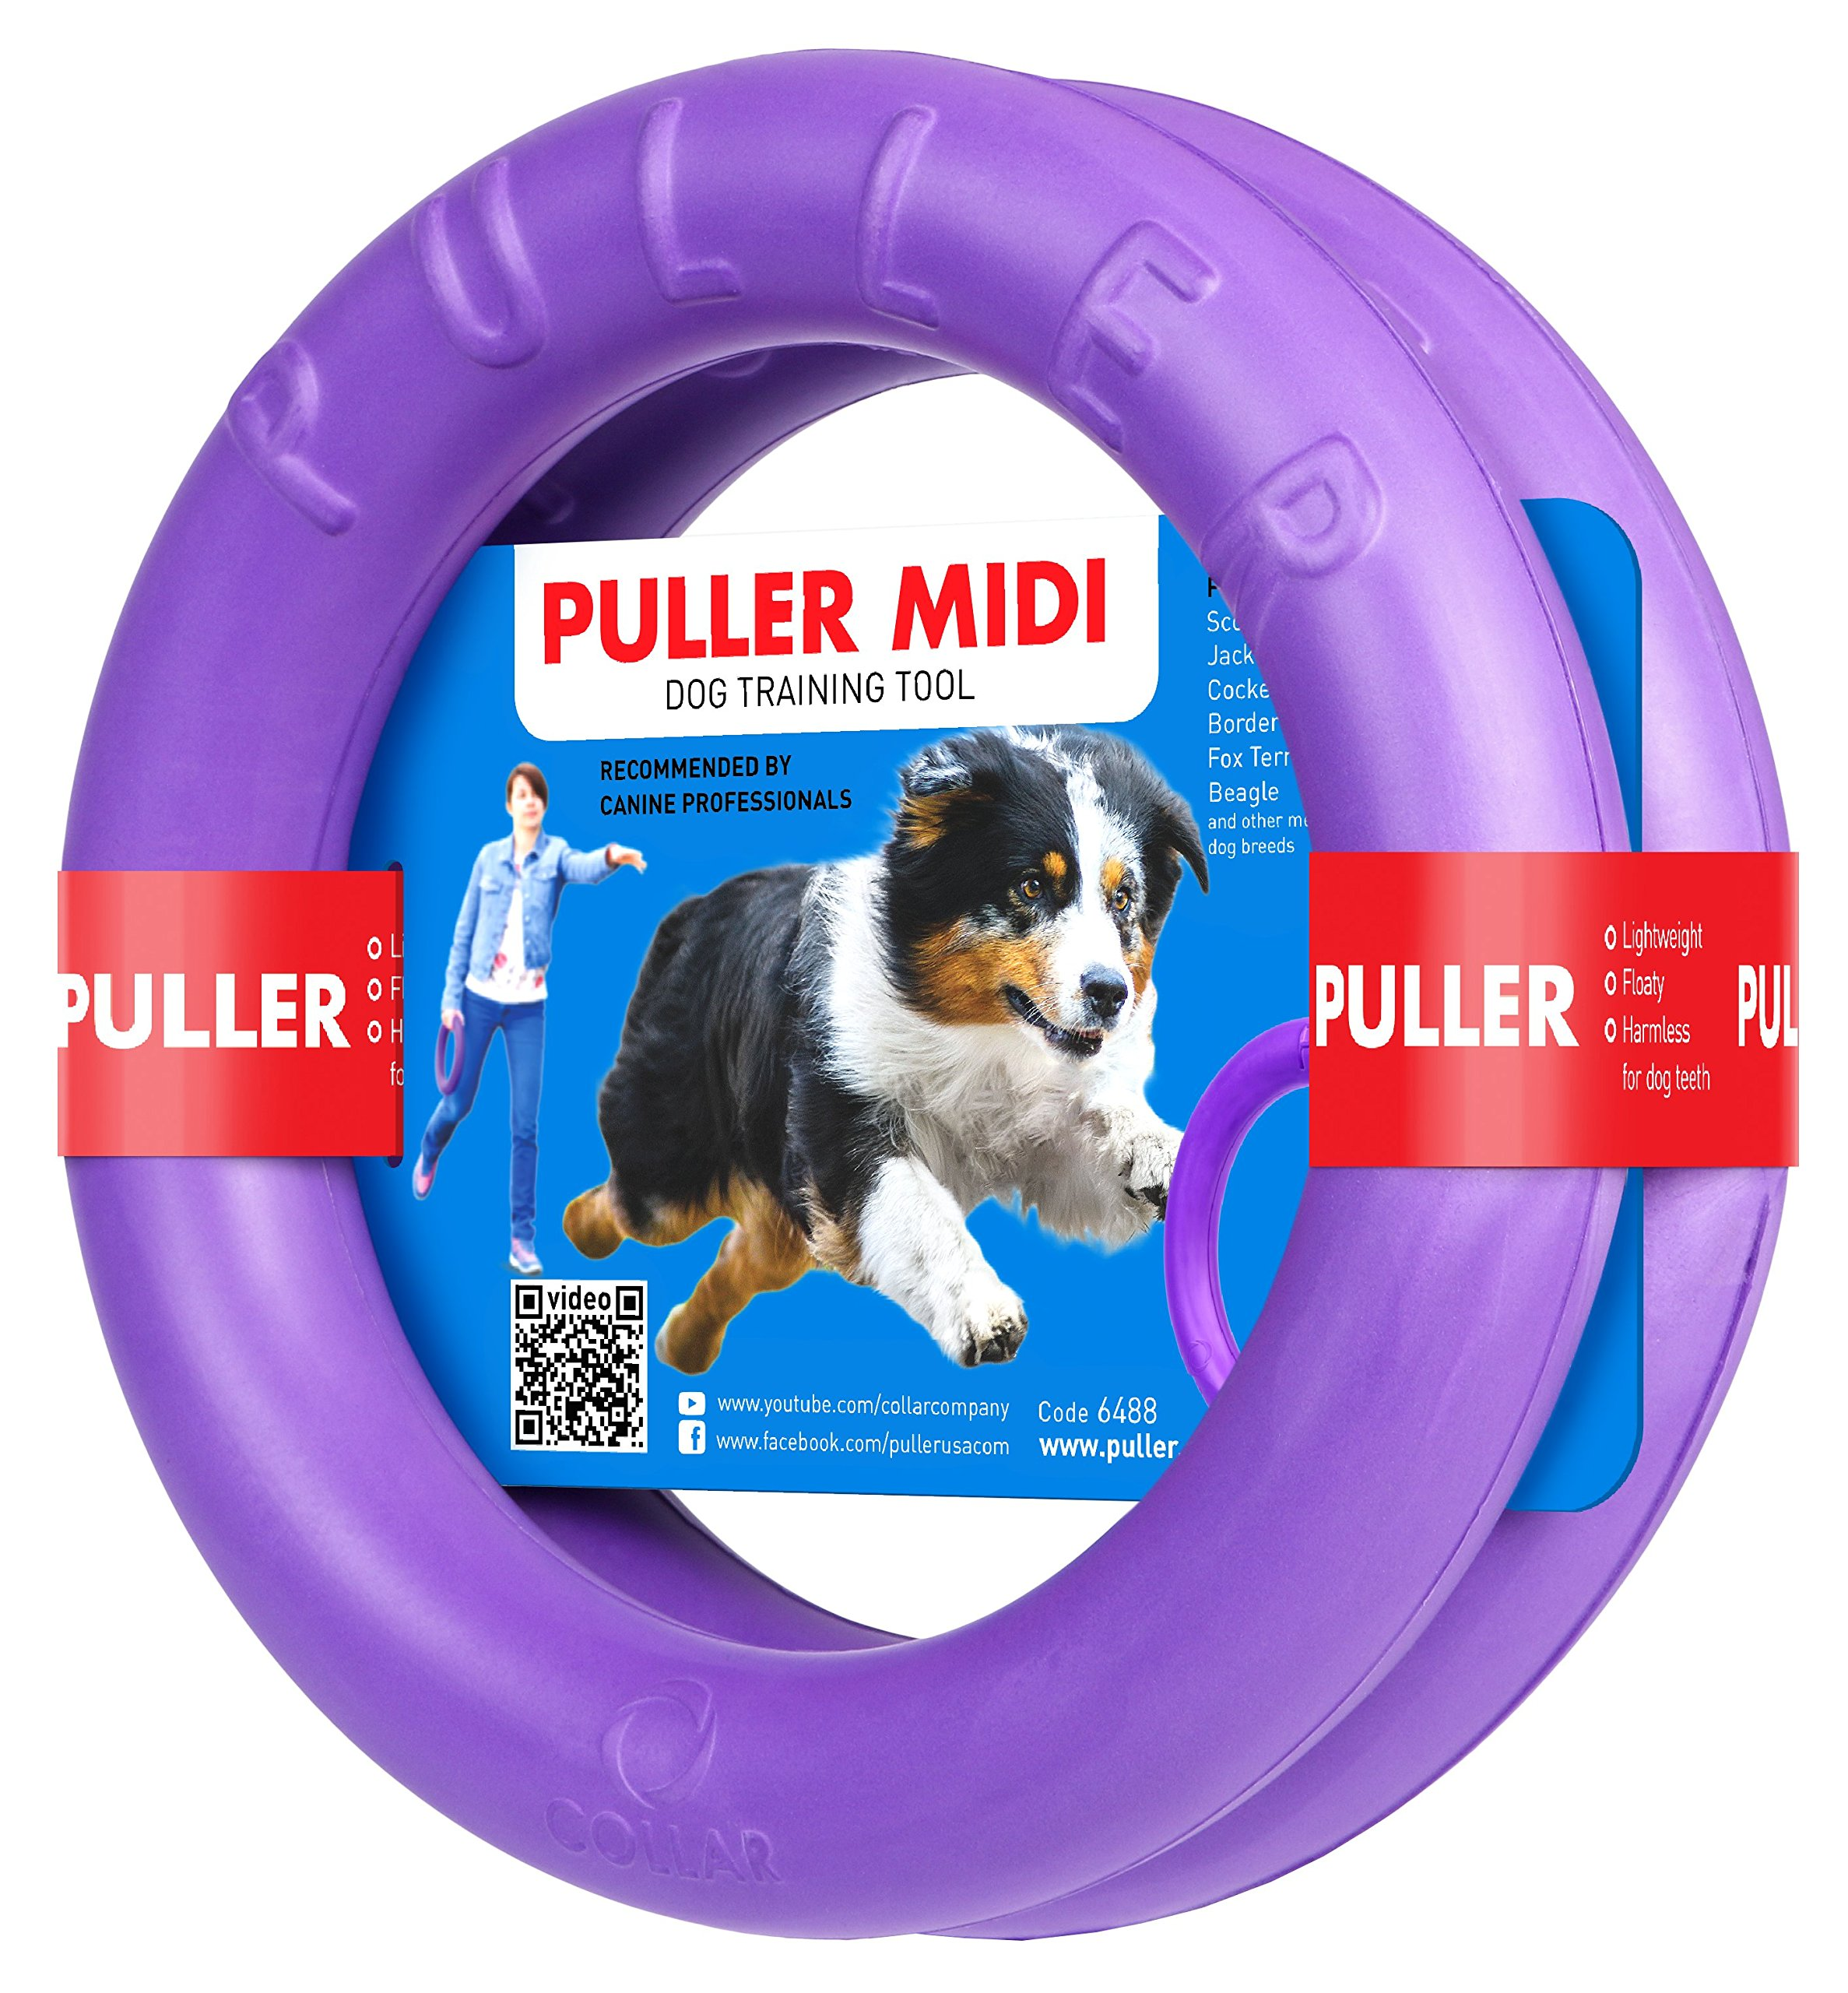 Puller Midi Two Rings not just Toy for Dogs Active Toy for Dogs Fitness Toys for Dogs Ideal for Medium and Small Dog Breeds Dog